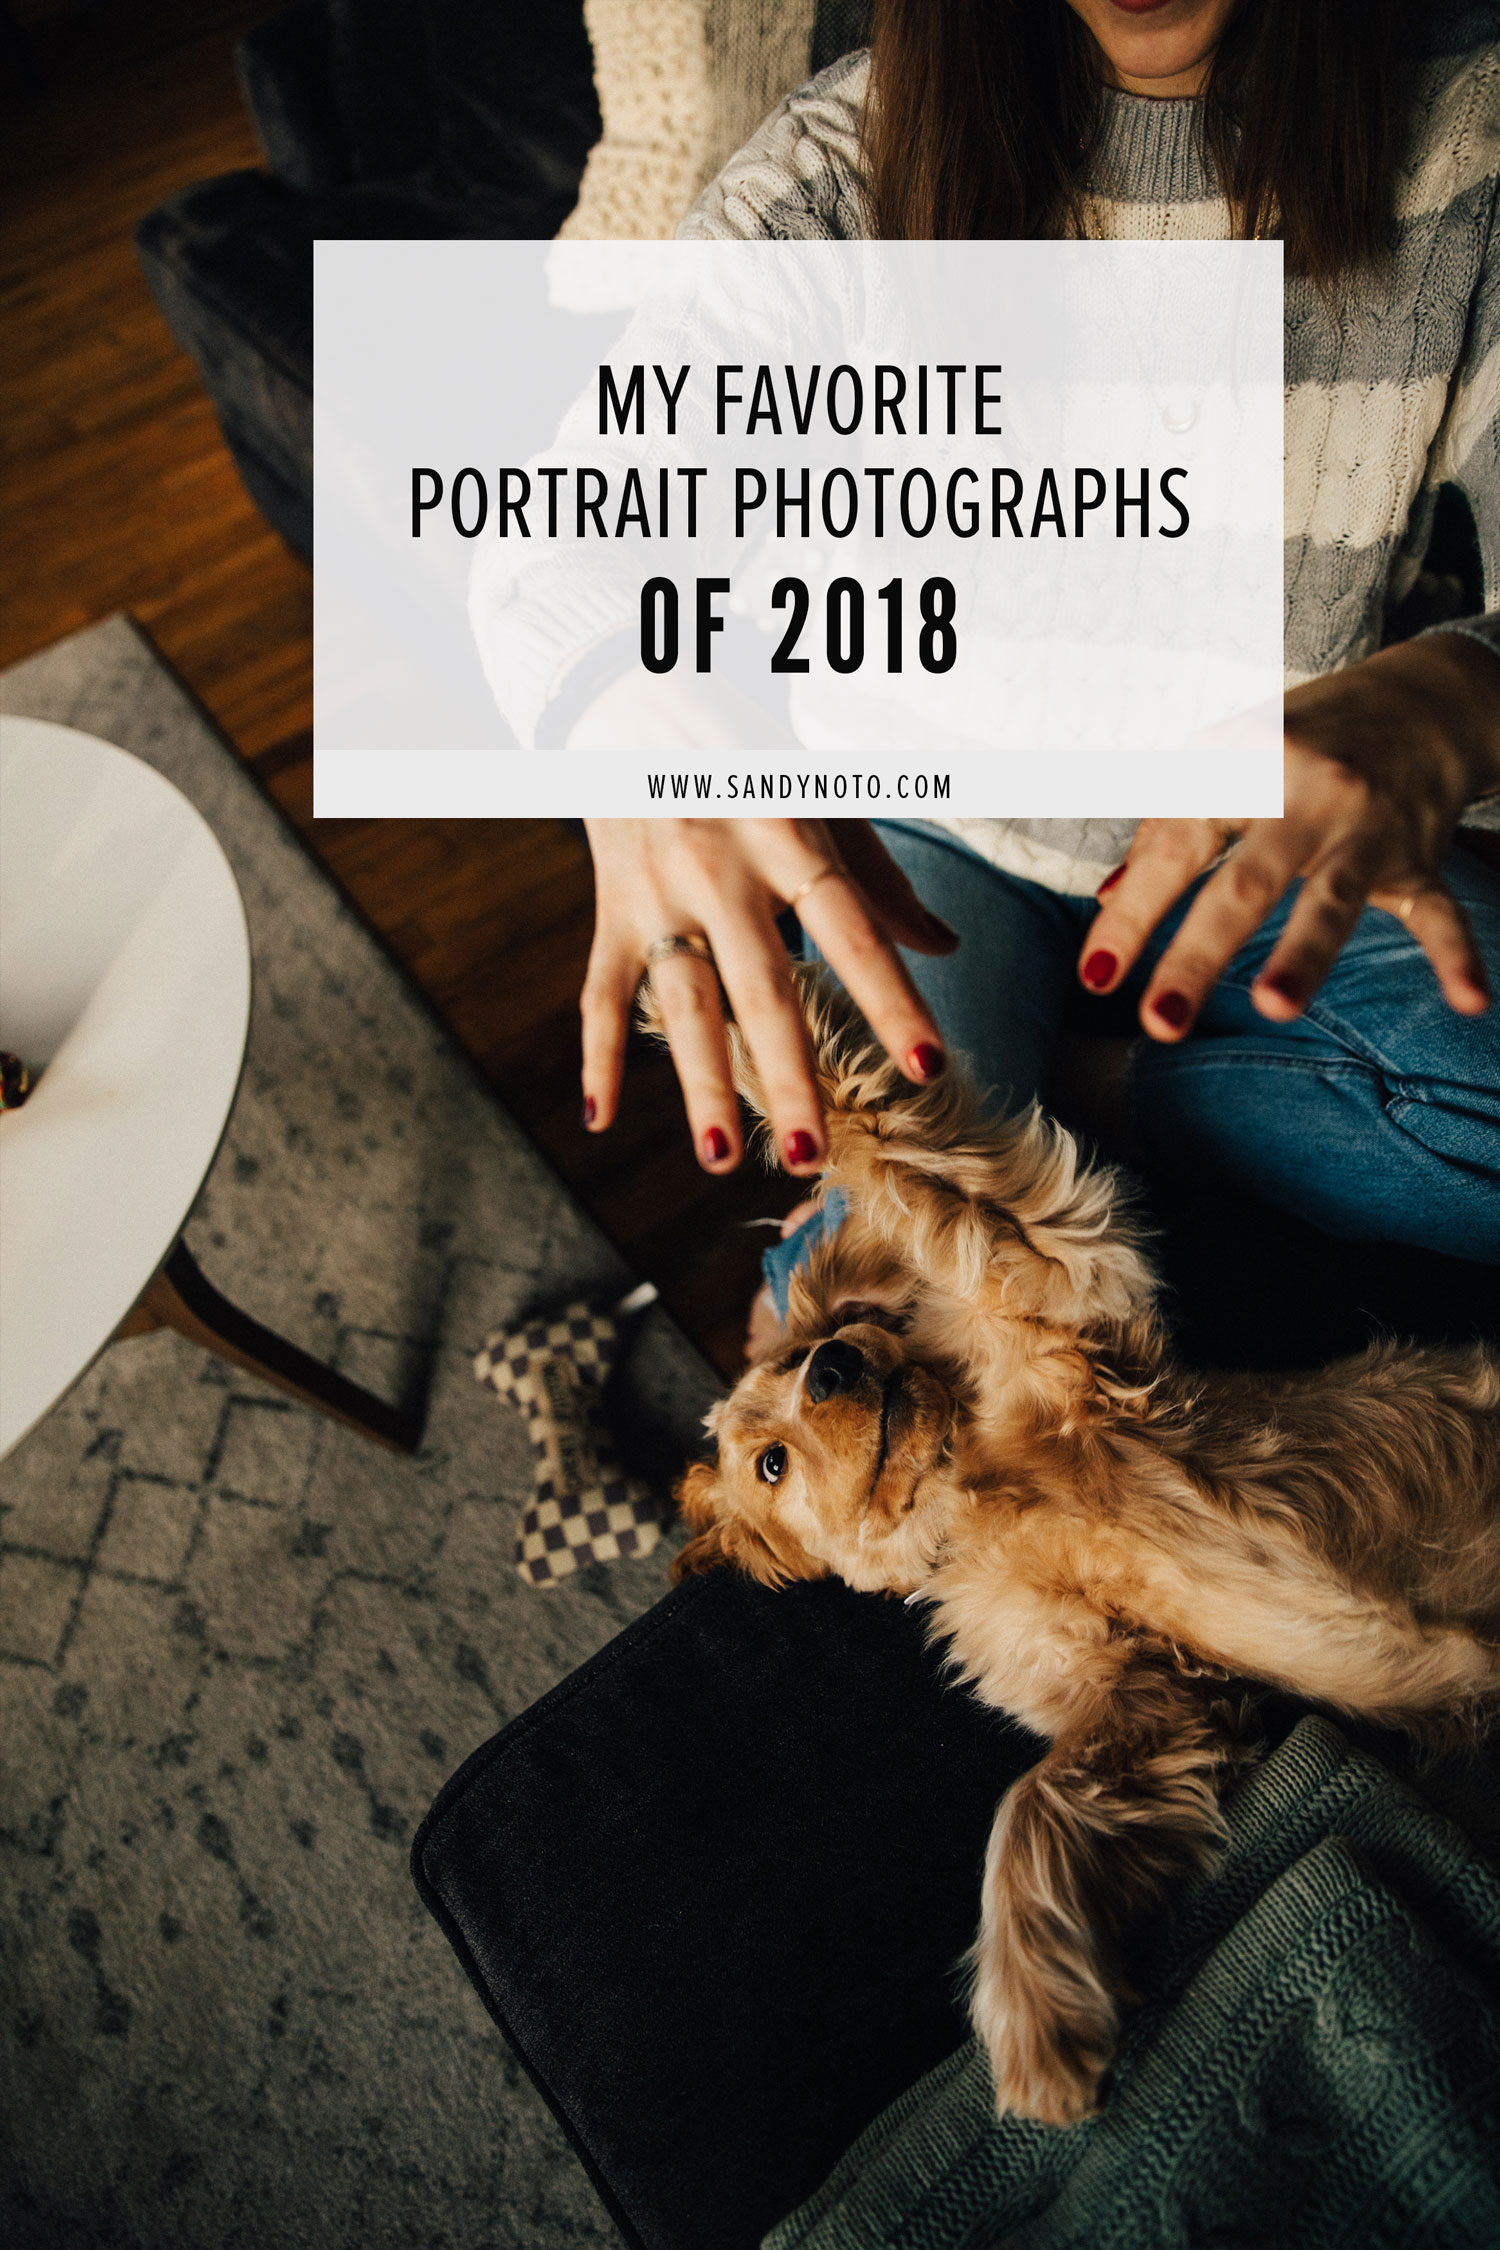 A few favorite portrait photos from 2018